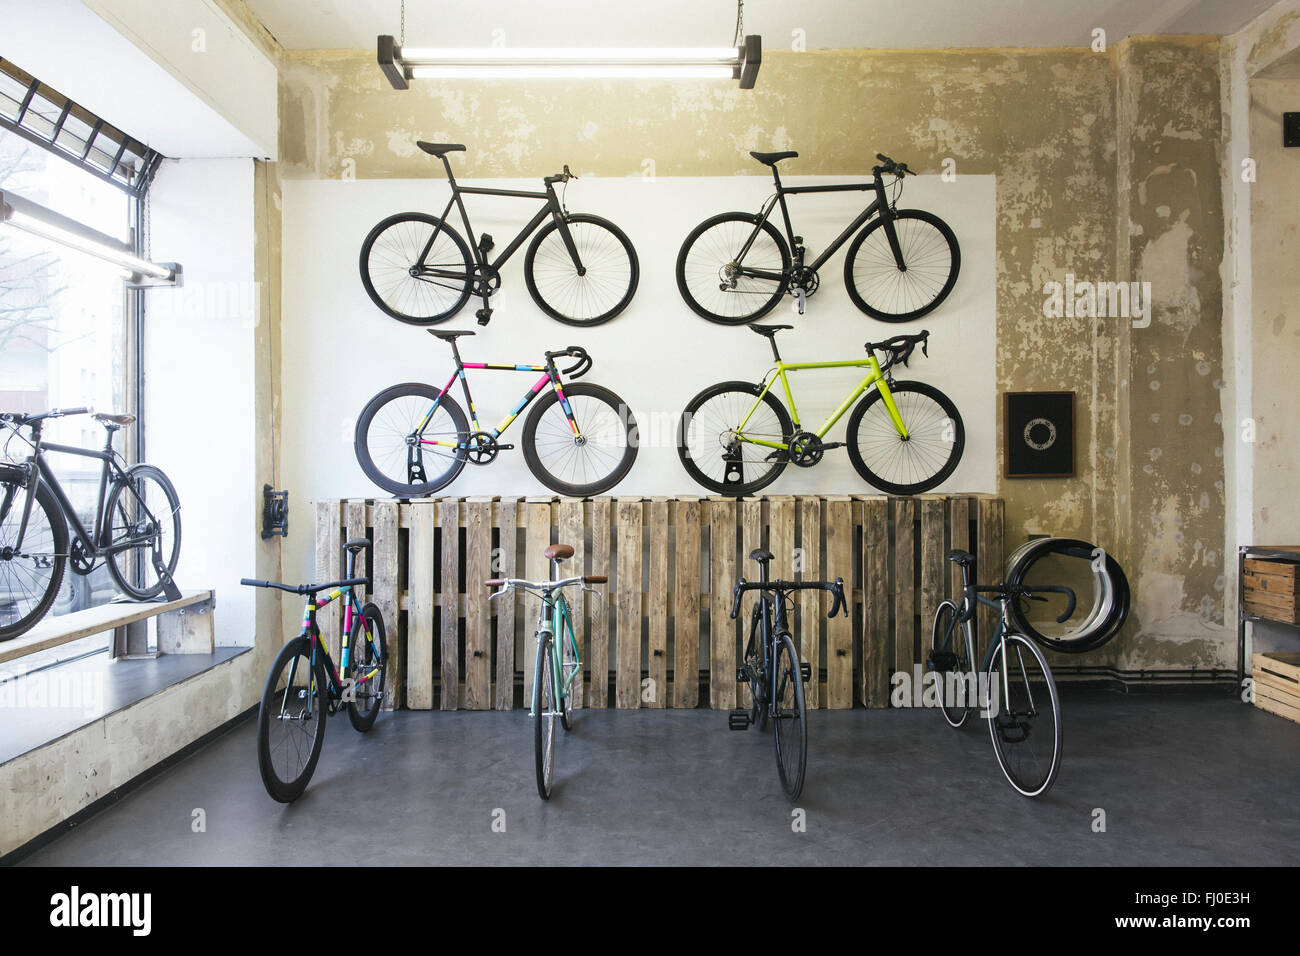 Assortment of racing cycles in a custom-made bicycle store - Stock Image